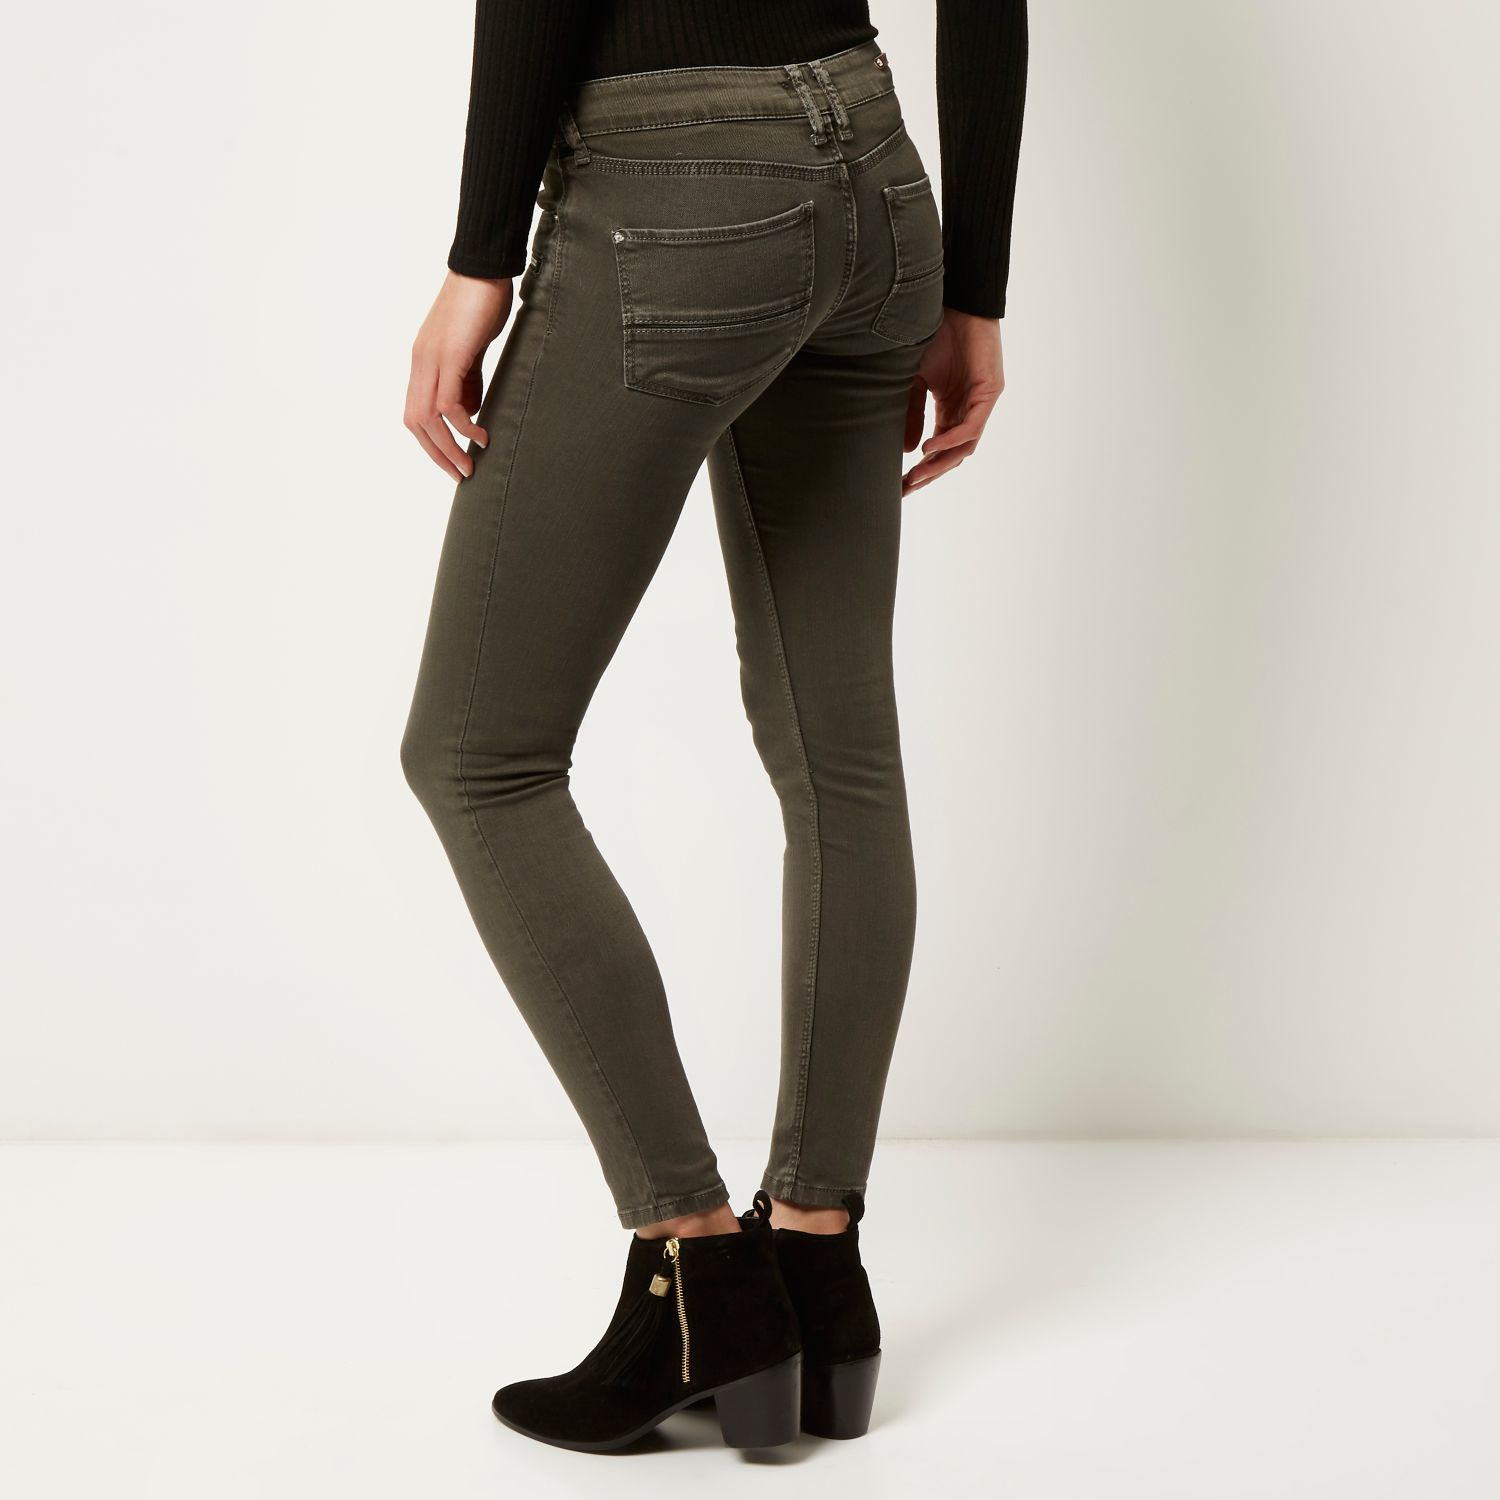 River island Khaki Low Rise Zip Amelie Superskinny Jeans in